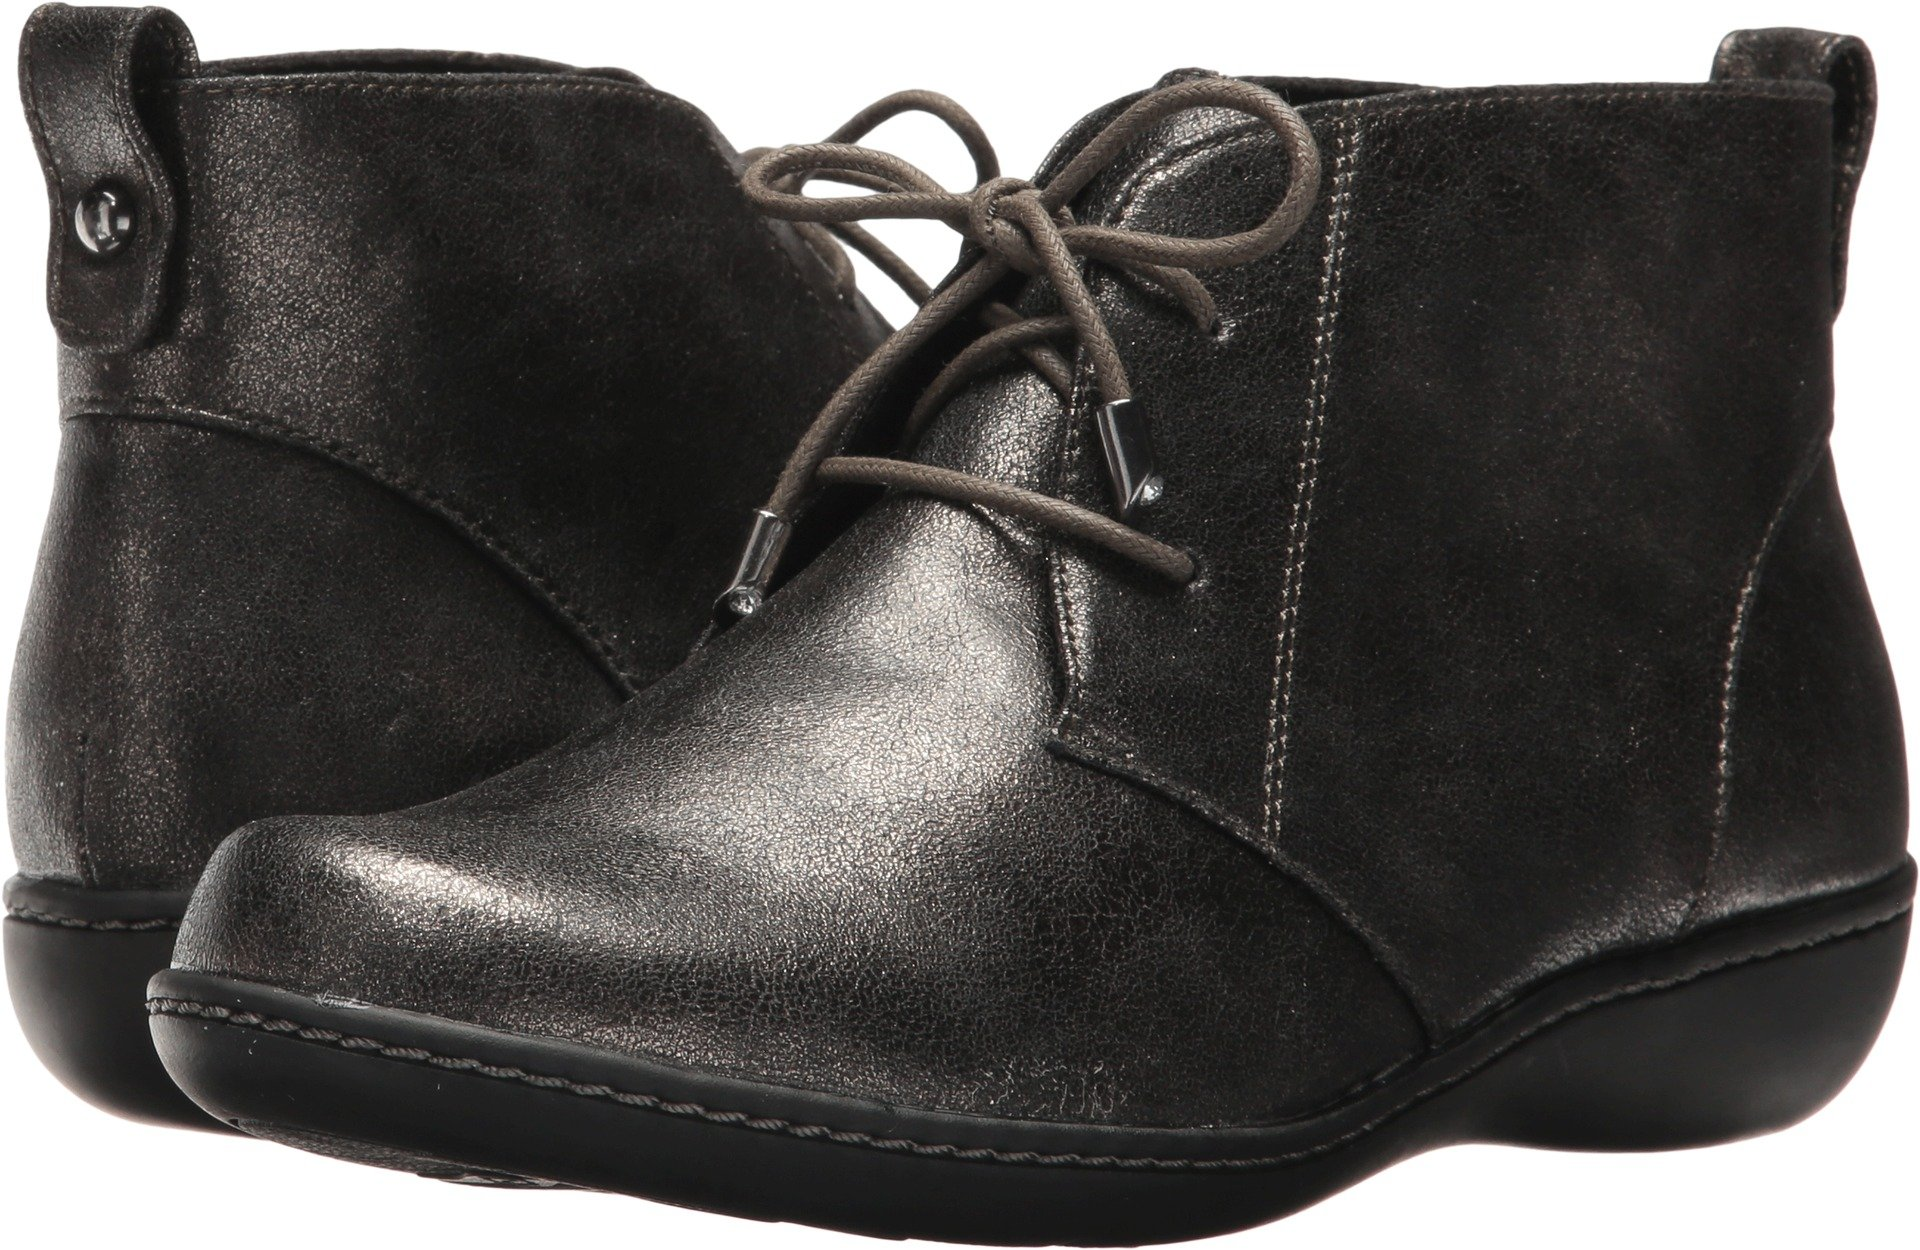 Soft Style by Hush Puppies Women's Jinger Ankle Bootie, Gunmetal Metallic, 8 N US